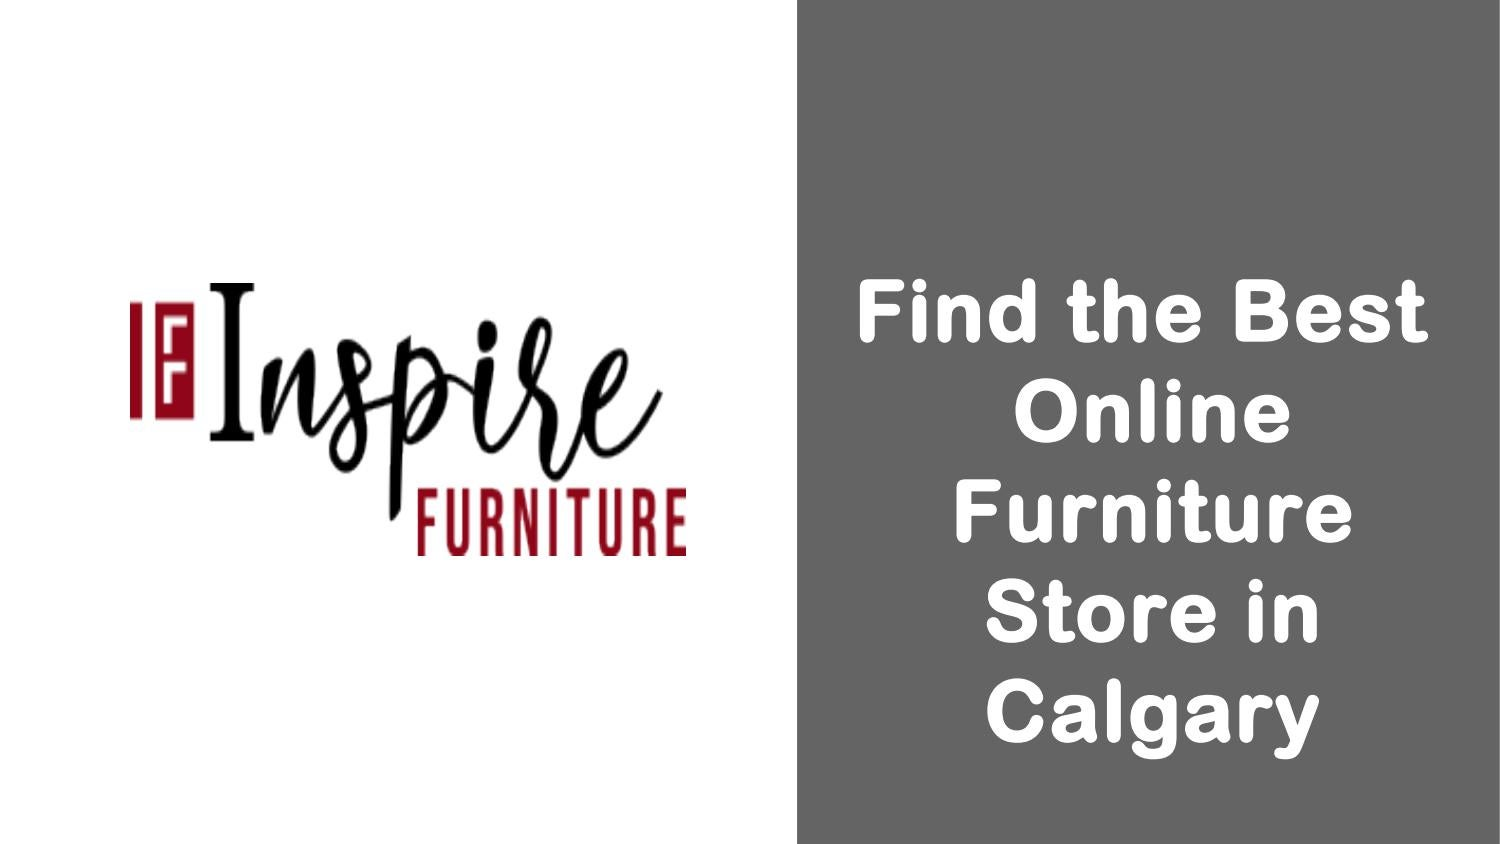 Find The Best Online Furniture Store In Calgary By Inspire Furniture